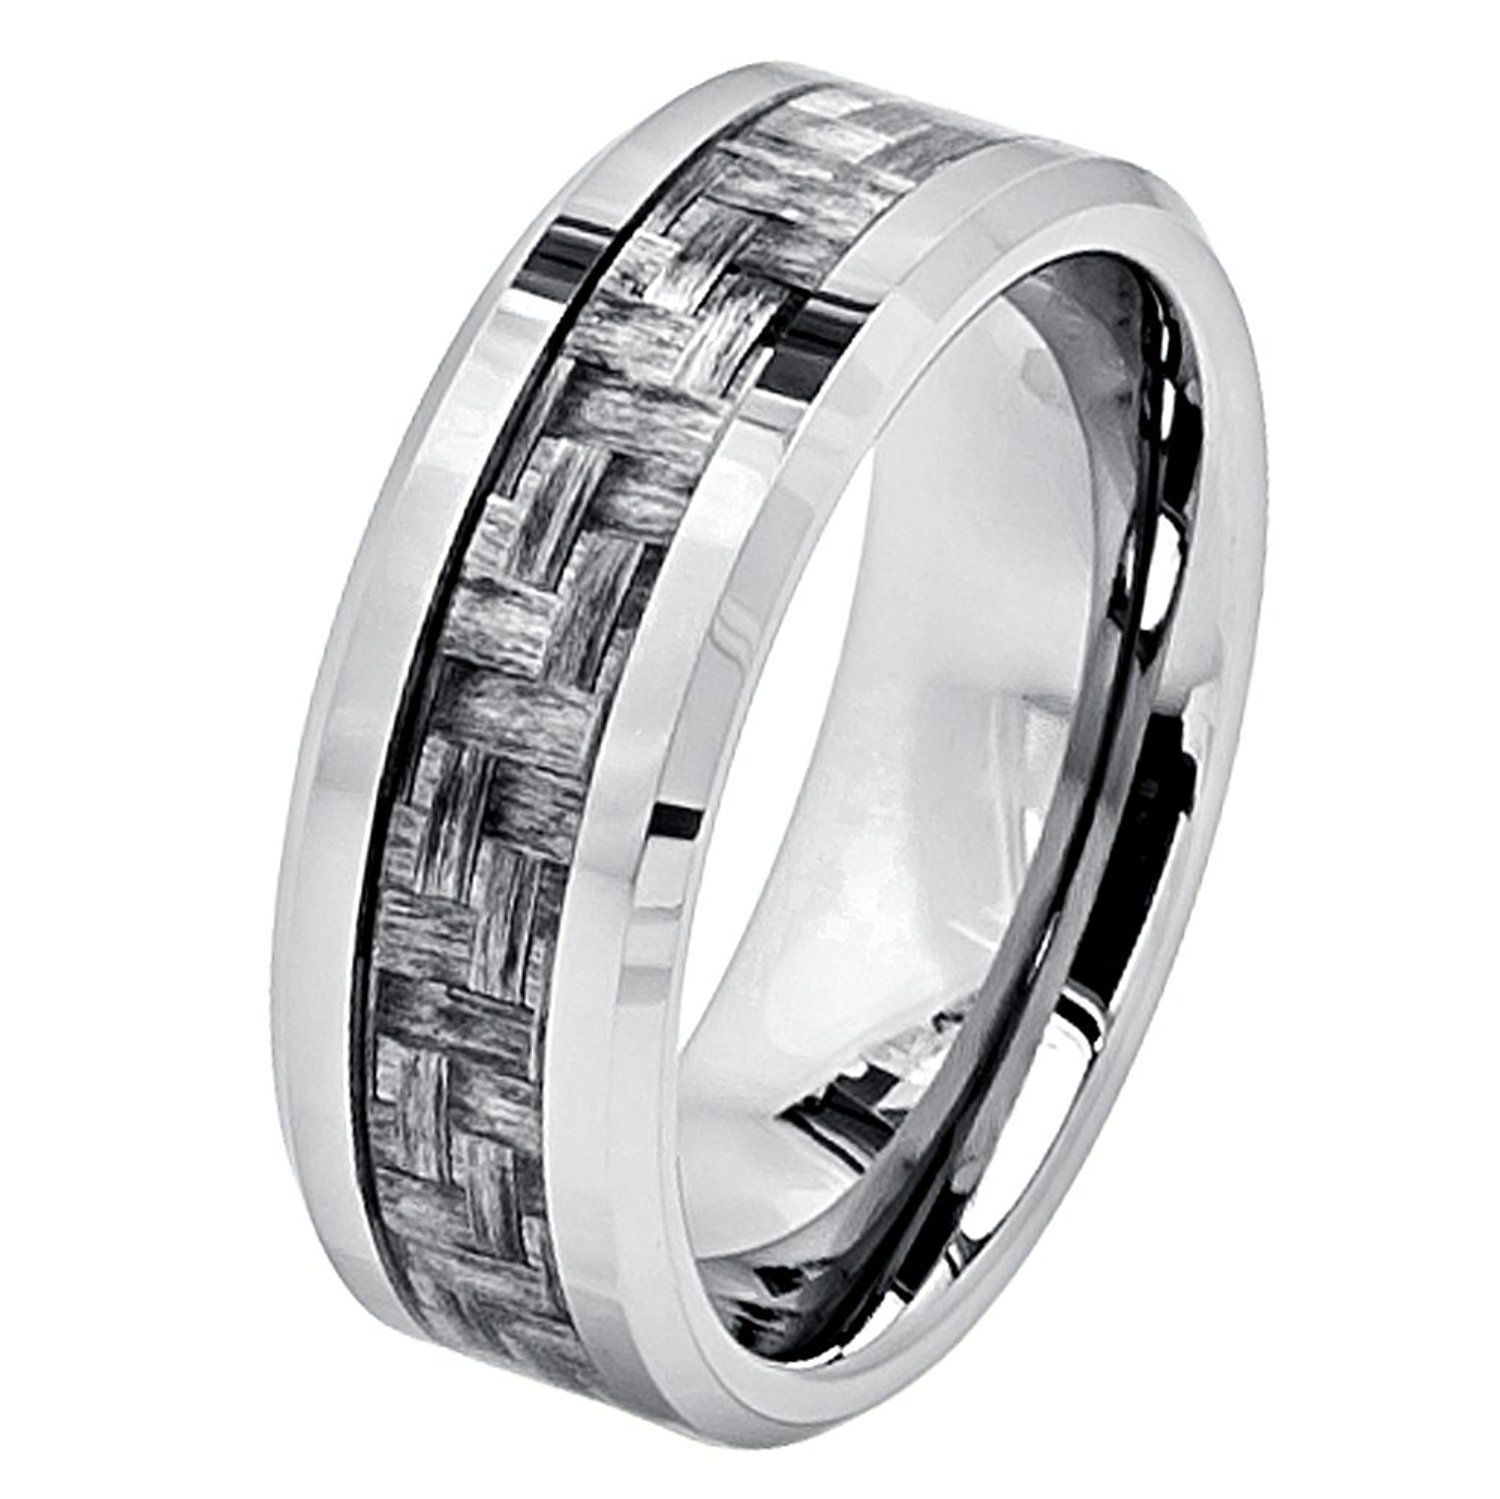 8mm Tungsten Carbide Beveled Edge Charcoal Gray Carbon